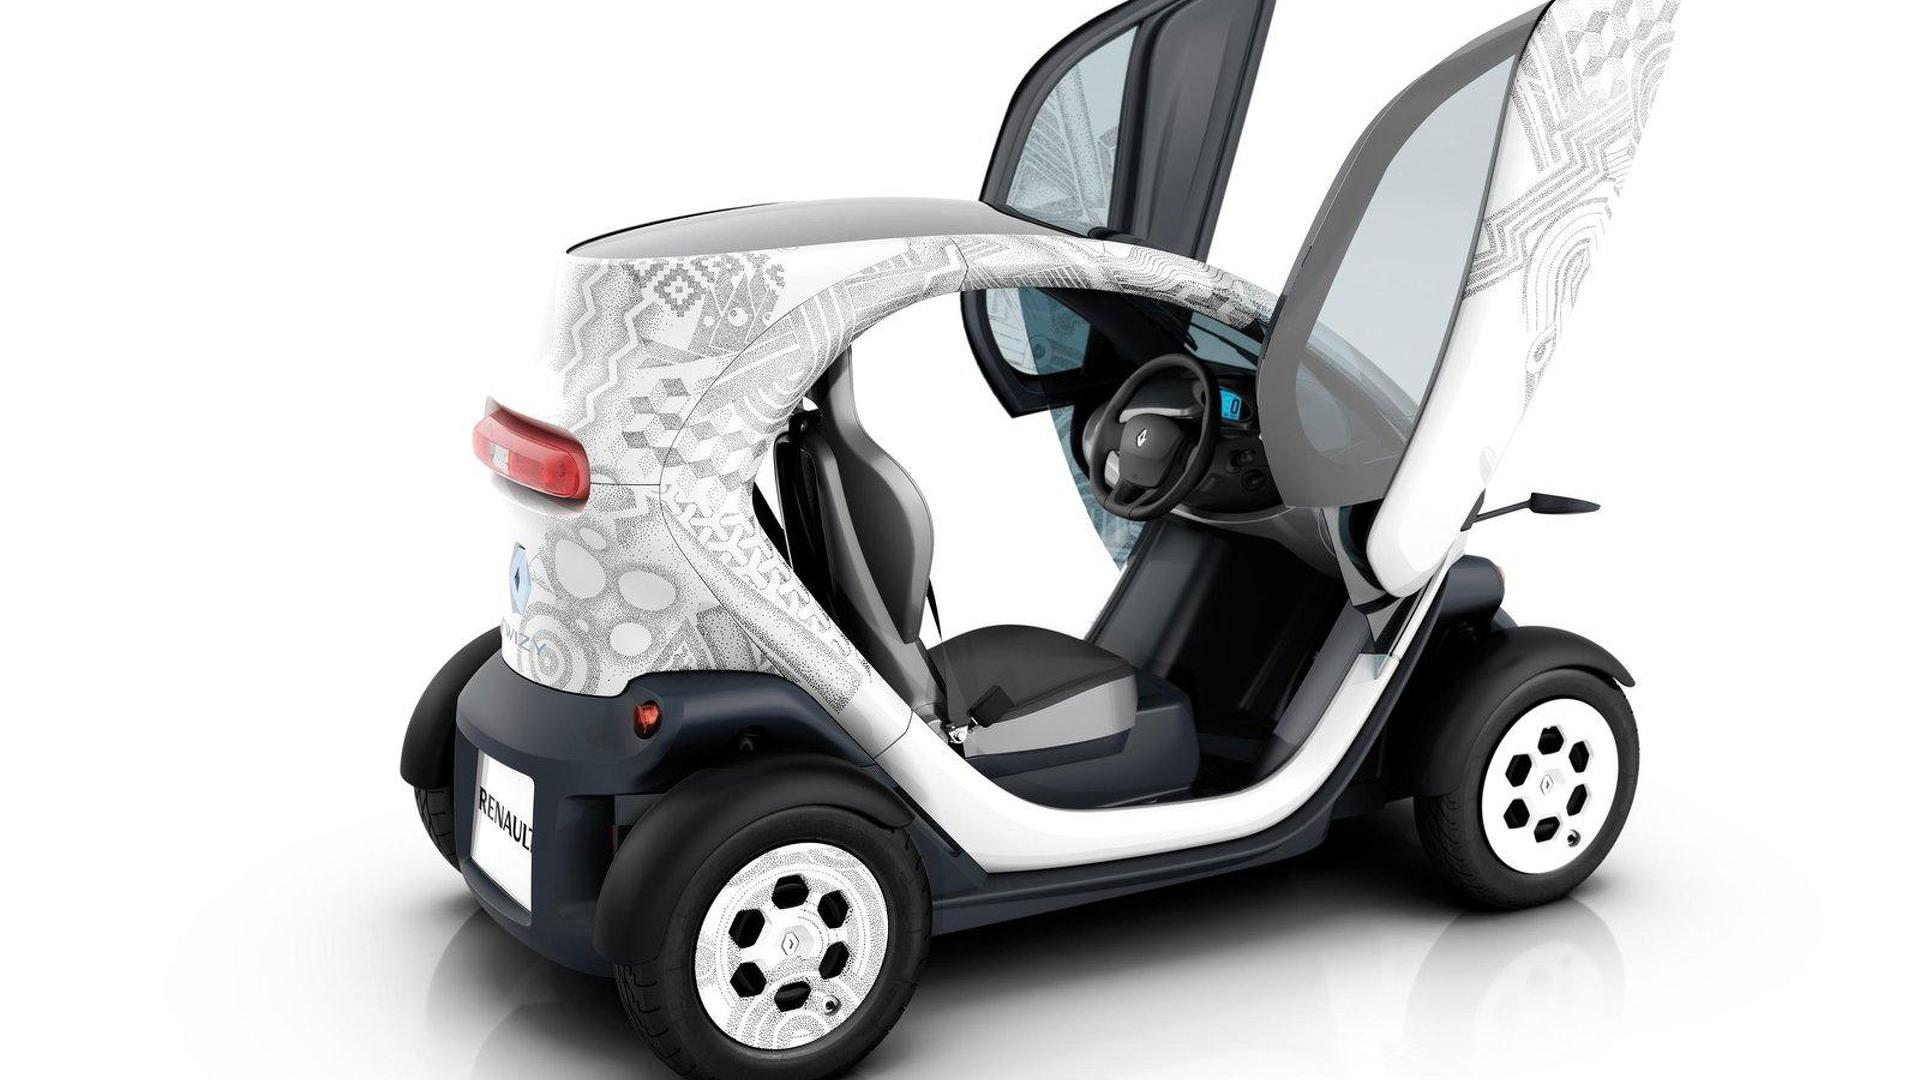 Renault Twizy Pricing Released